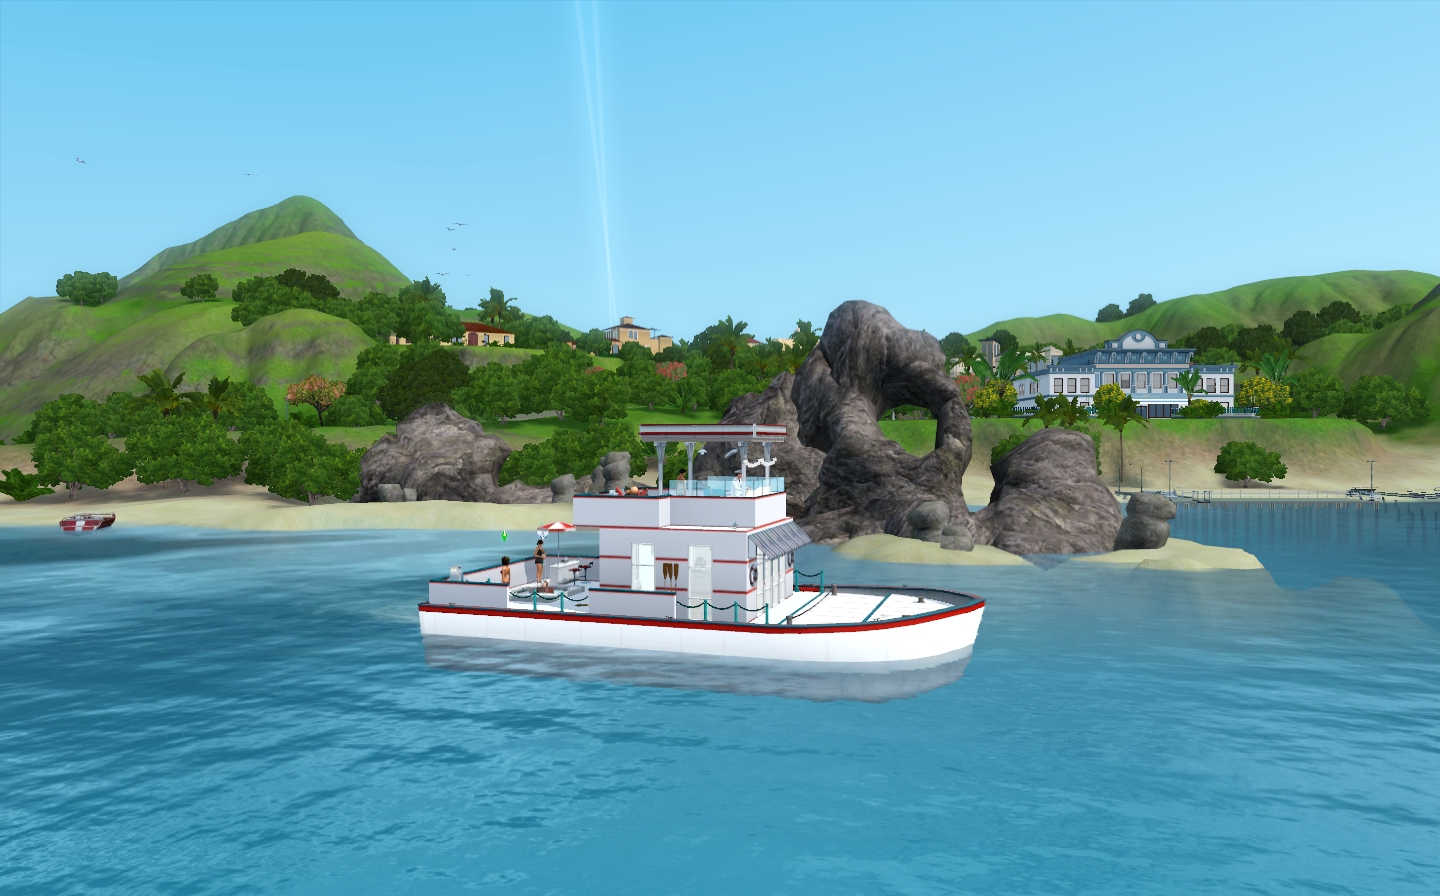 Prince Of Tides - Houseboat by Via Sims